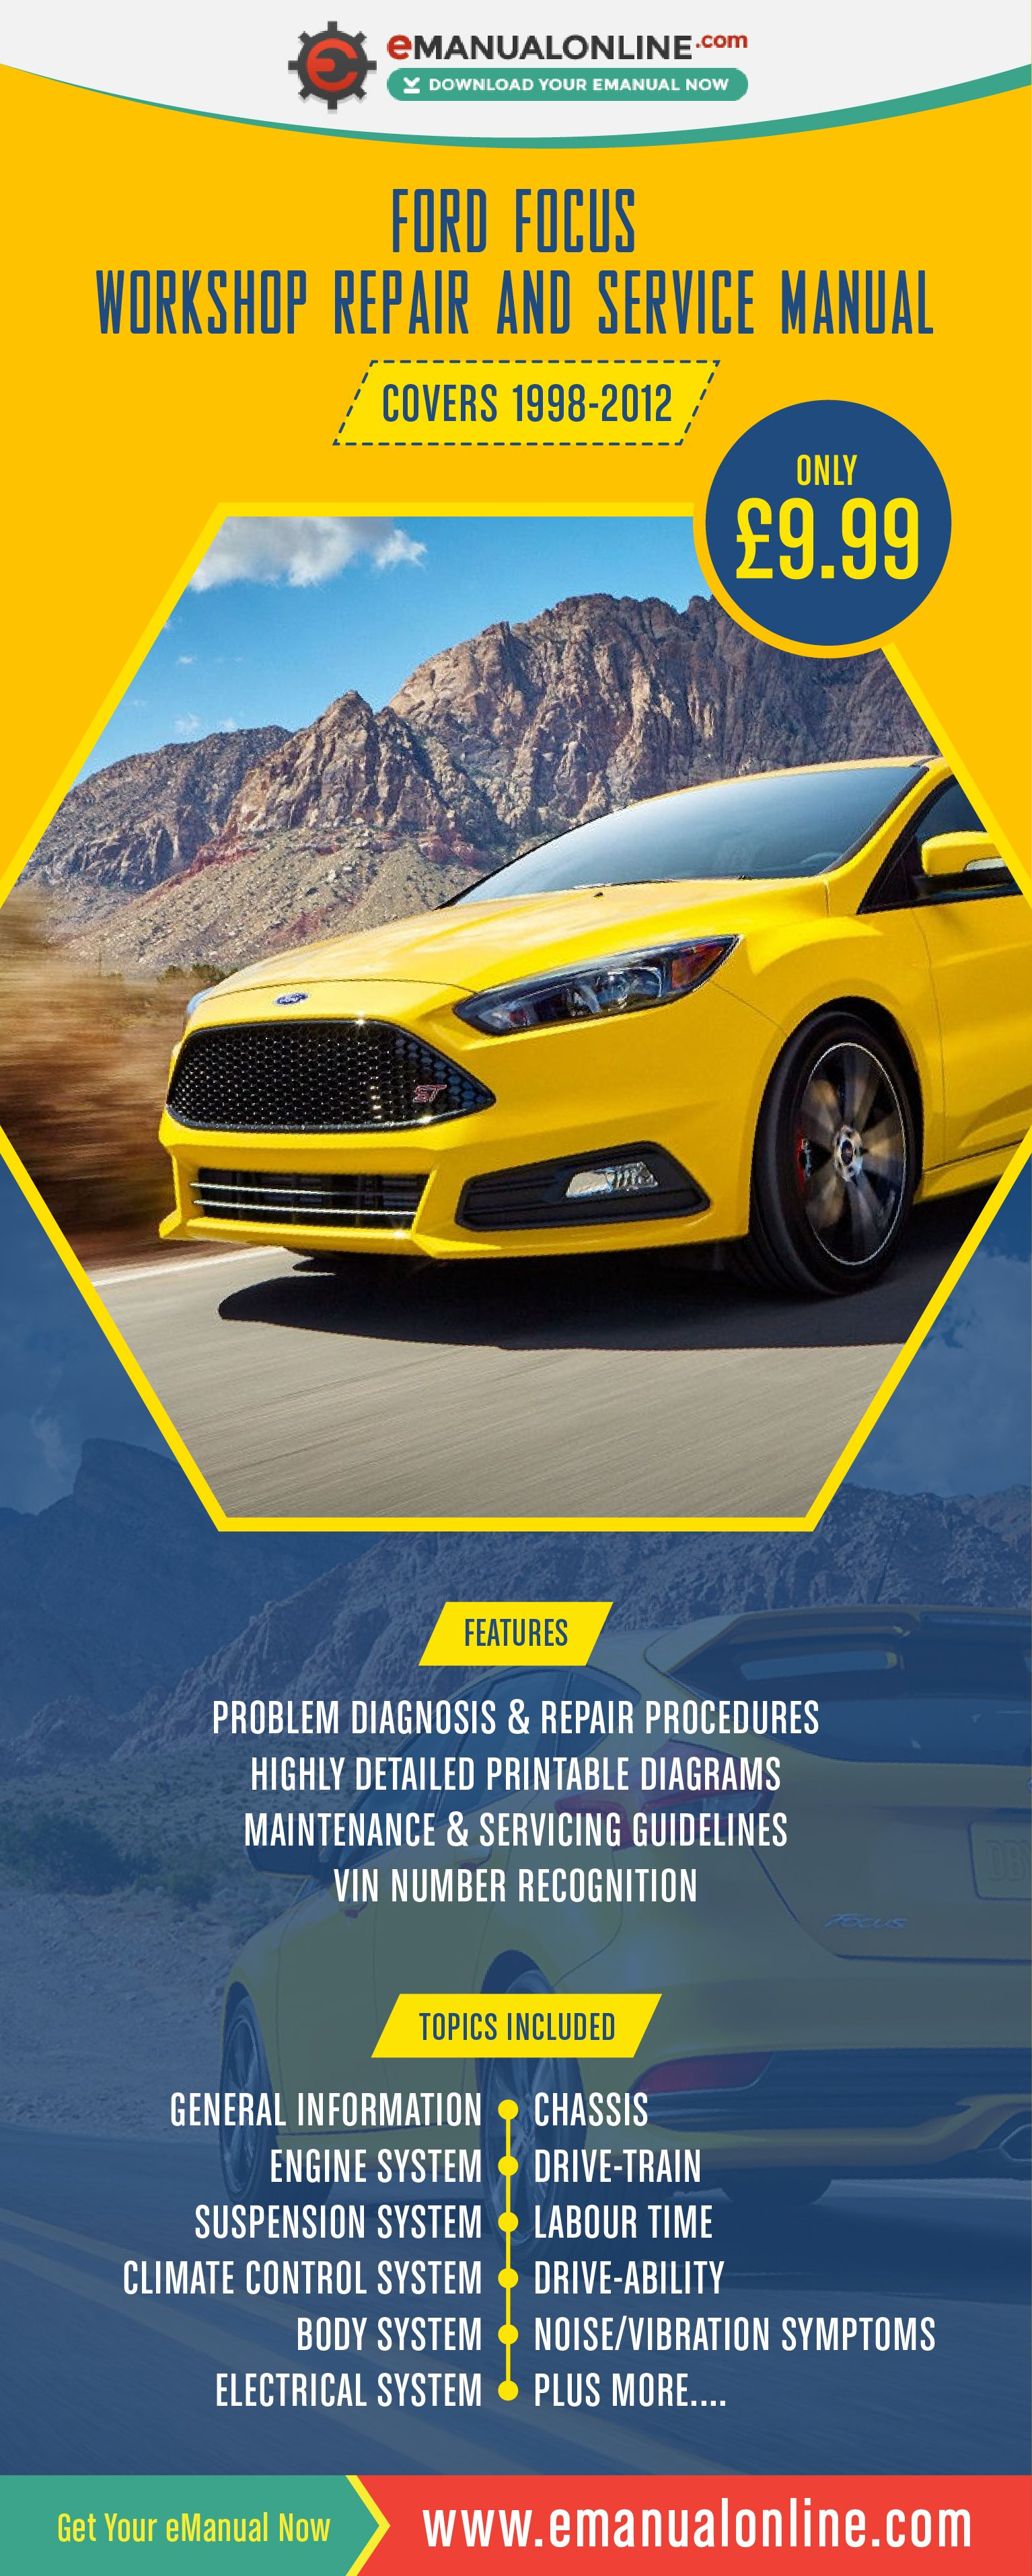 Ford Focus Workshop Repair And Service Manual This Workshop Manual Contains Comprehensive Data On Repair Procedures Diagn Ford Focus Repair Manuals Manual Car